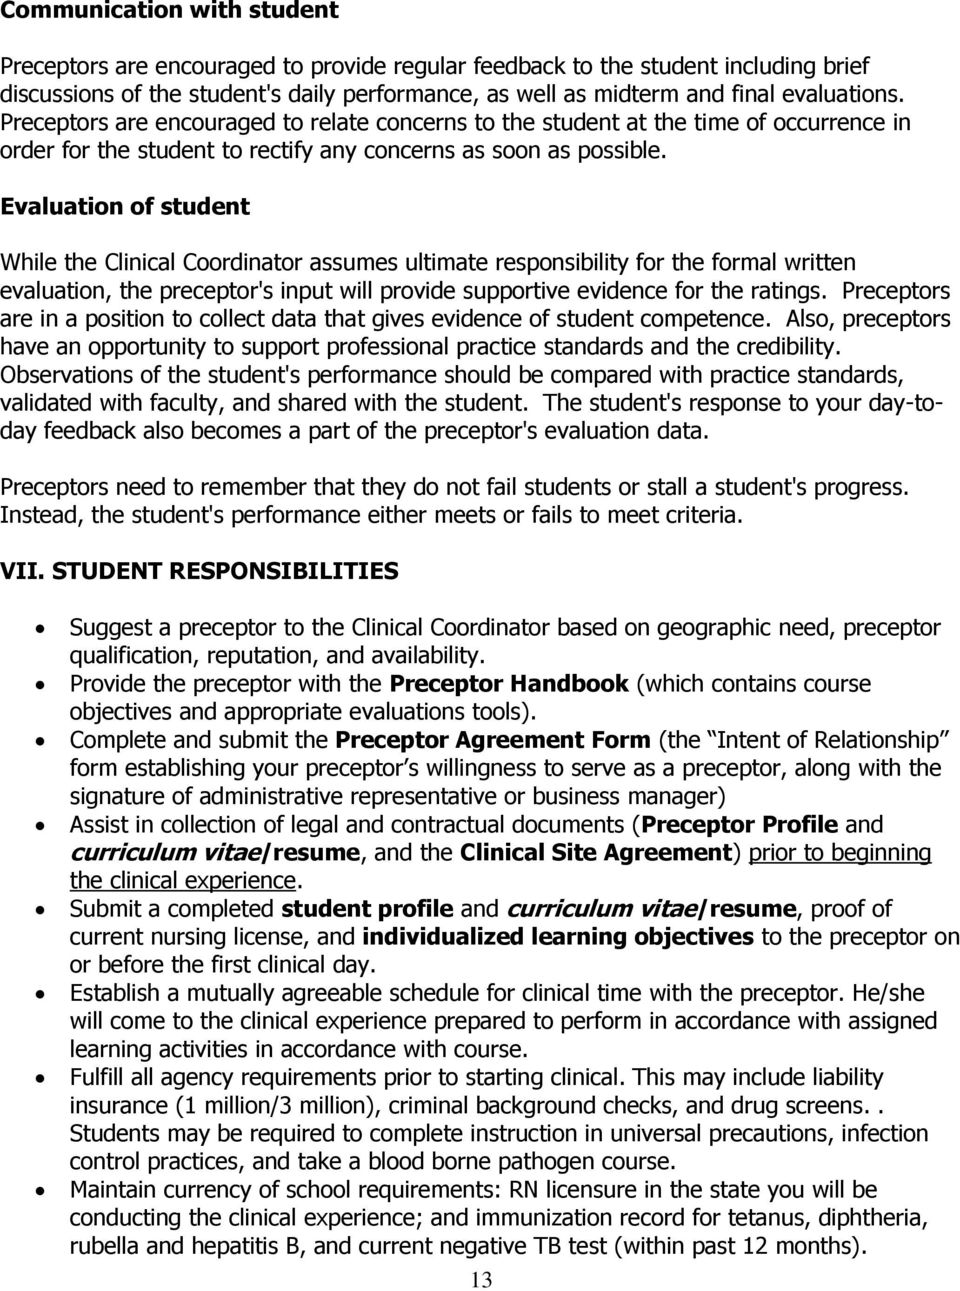 Evaluation of student While the Clinical Coordinator assumes ultimate responsibility for the formal written evaluation, the preceptor's input will provide supportive evidence for the ratings.